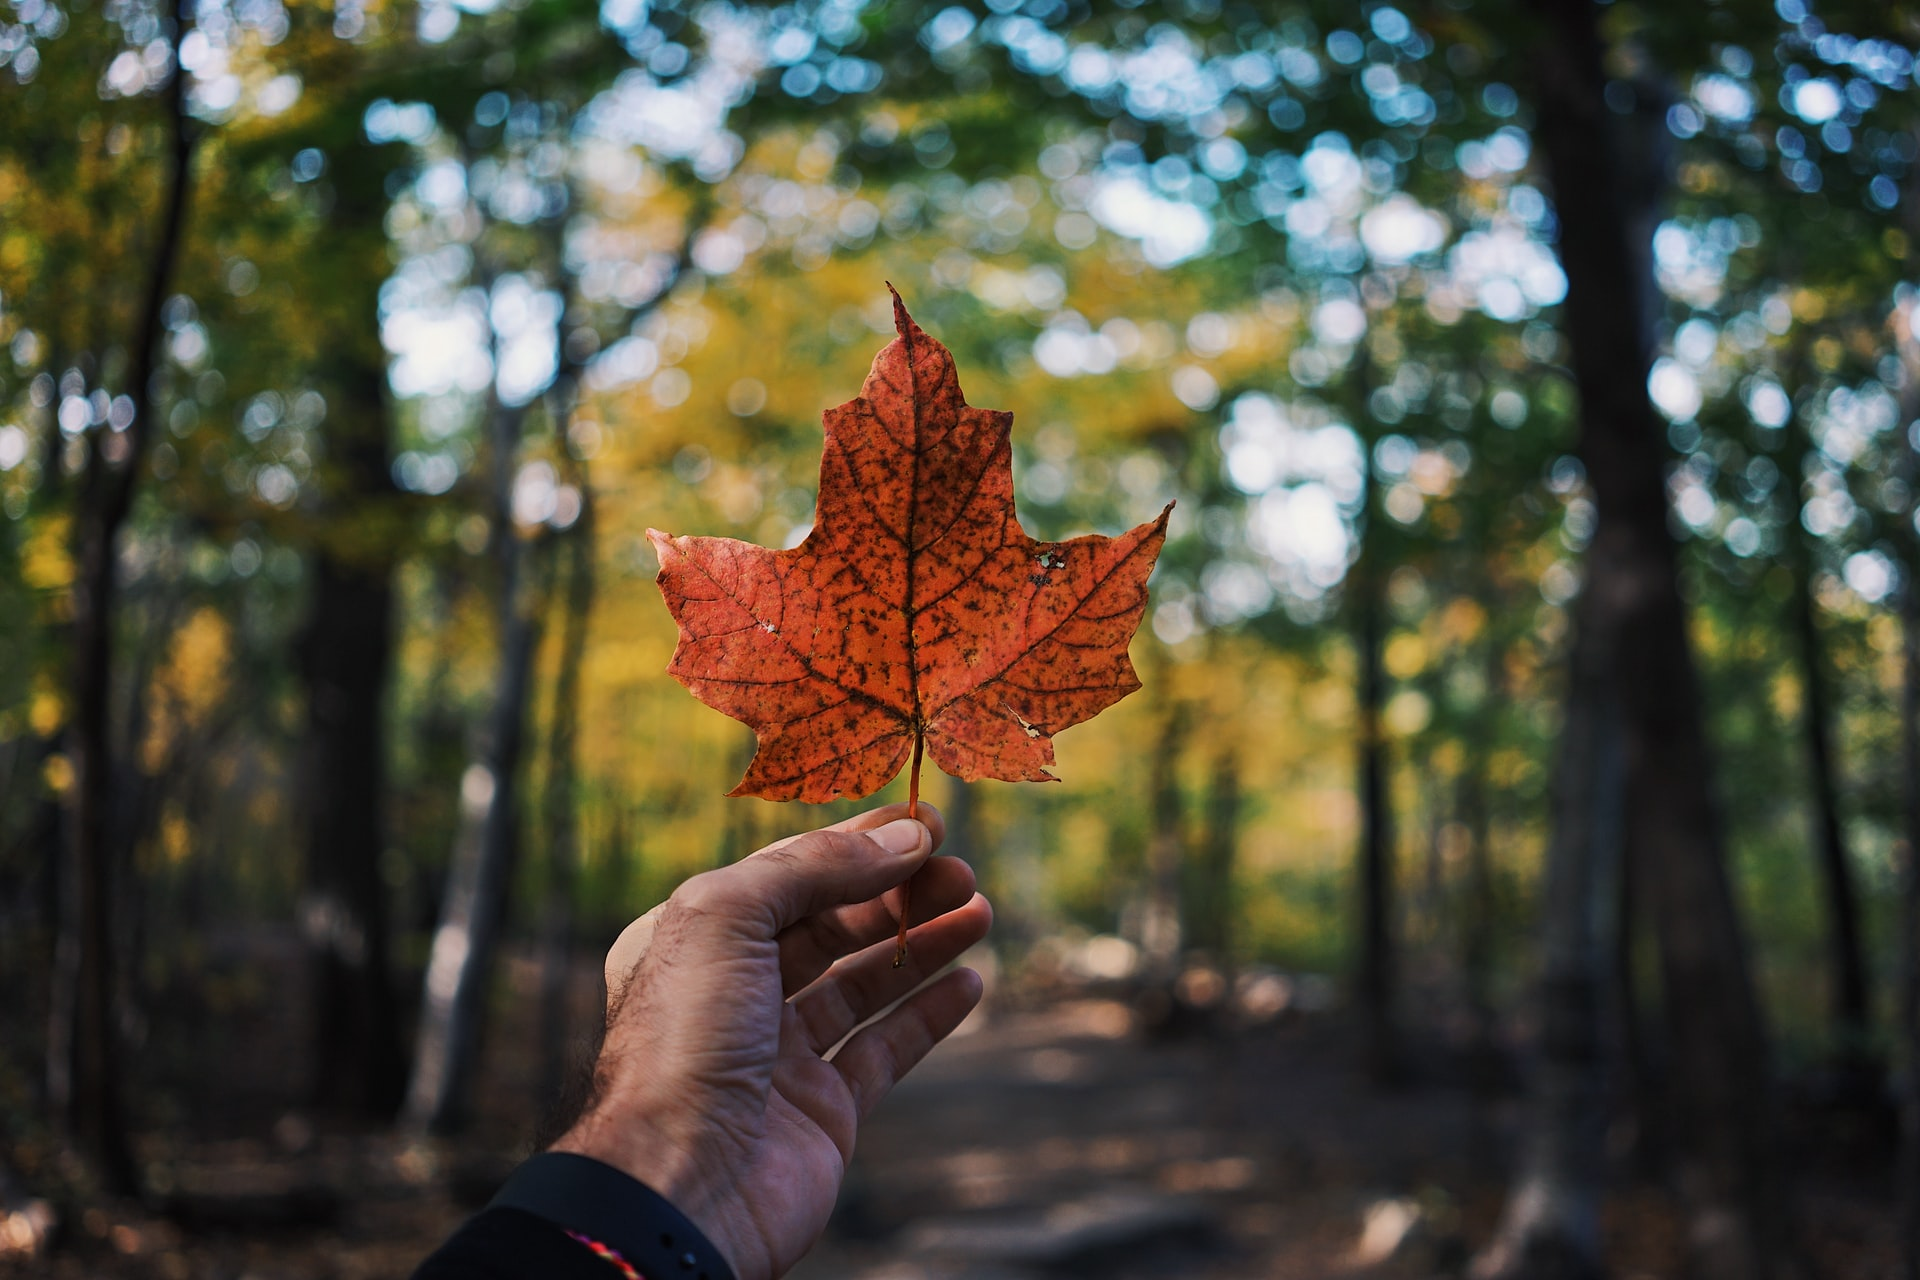 A person holding a red maple leaf, a symbol of Canada and immigration aspirations through IRCC.